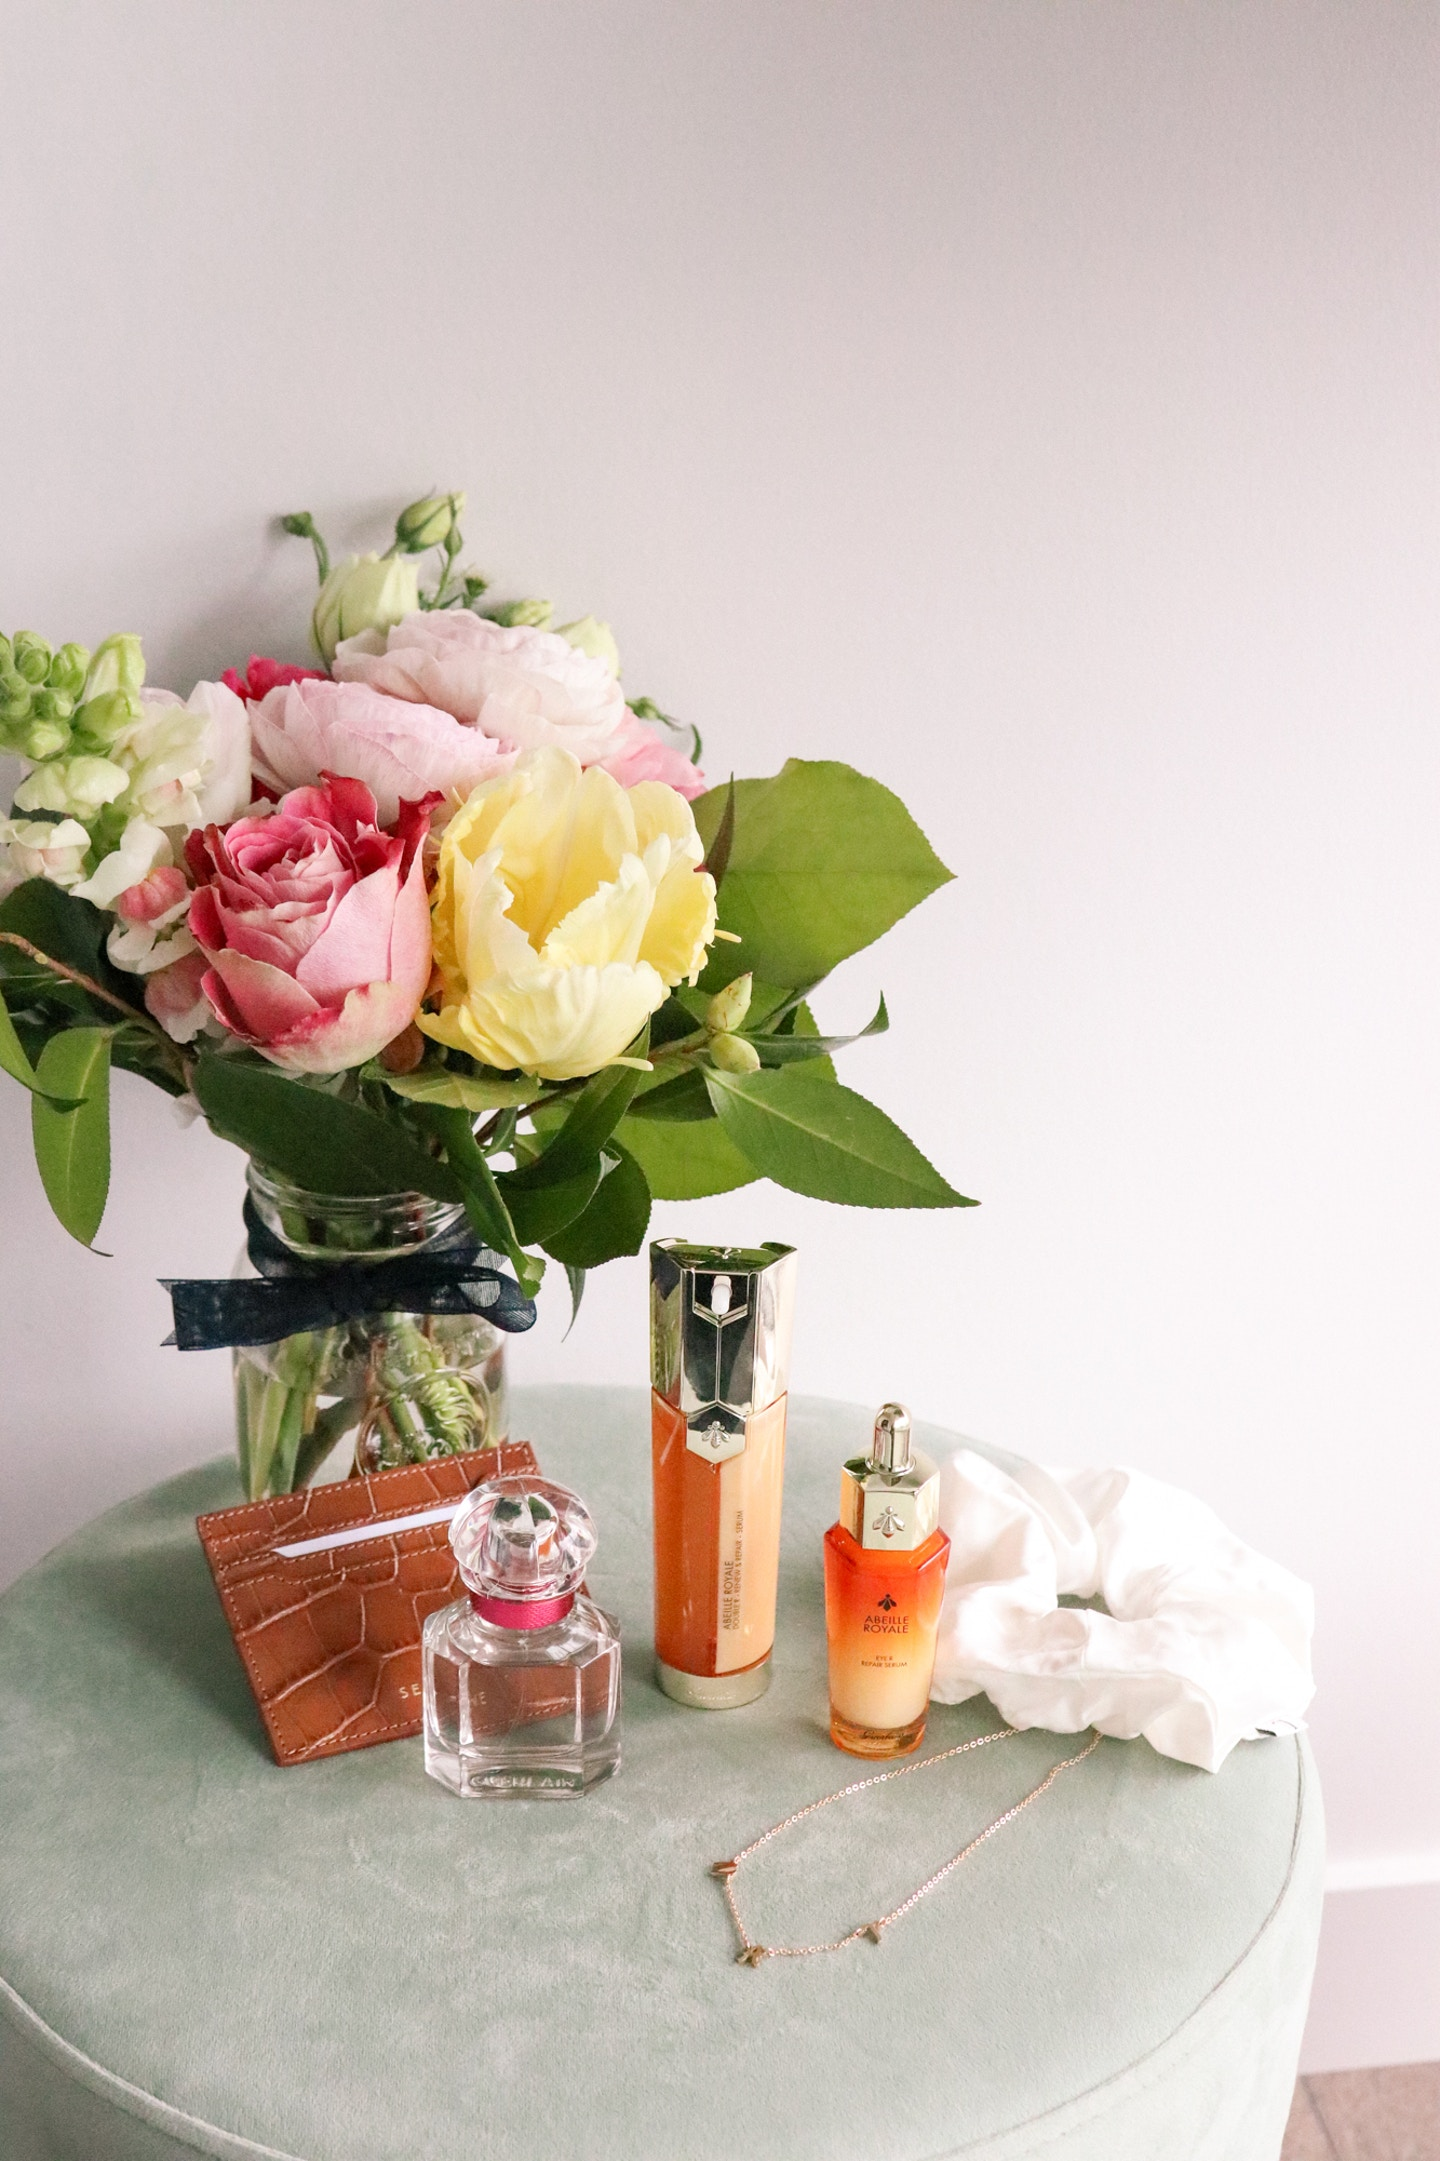 Mother's Day Gift Ideas 2021: From a new spa skincare routine to a floral perfume - I've rounded up some great gifting options for moms on mother's day.